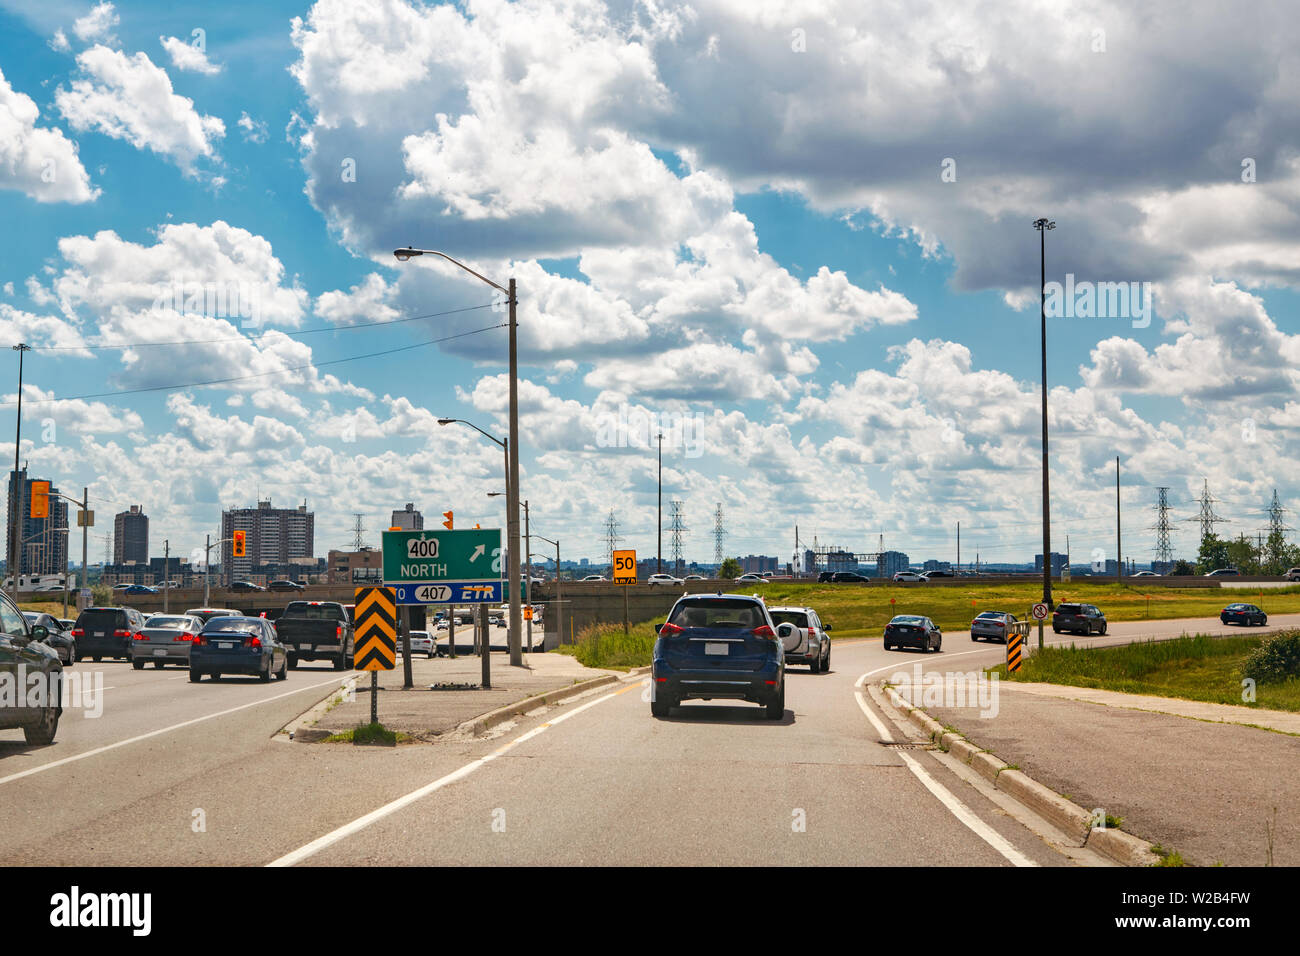 Beautiful landscape midday view of Toronto city highway street with cars traffic during sunny day with white clouds in blue sky. Busy outdoor downtown - Stock Image